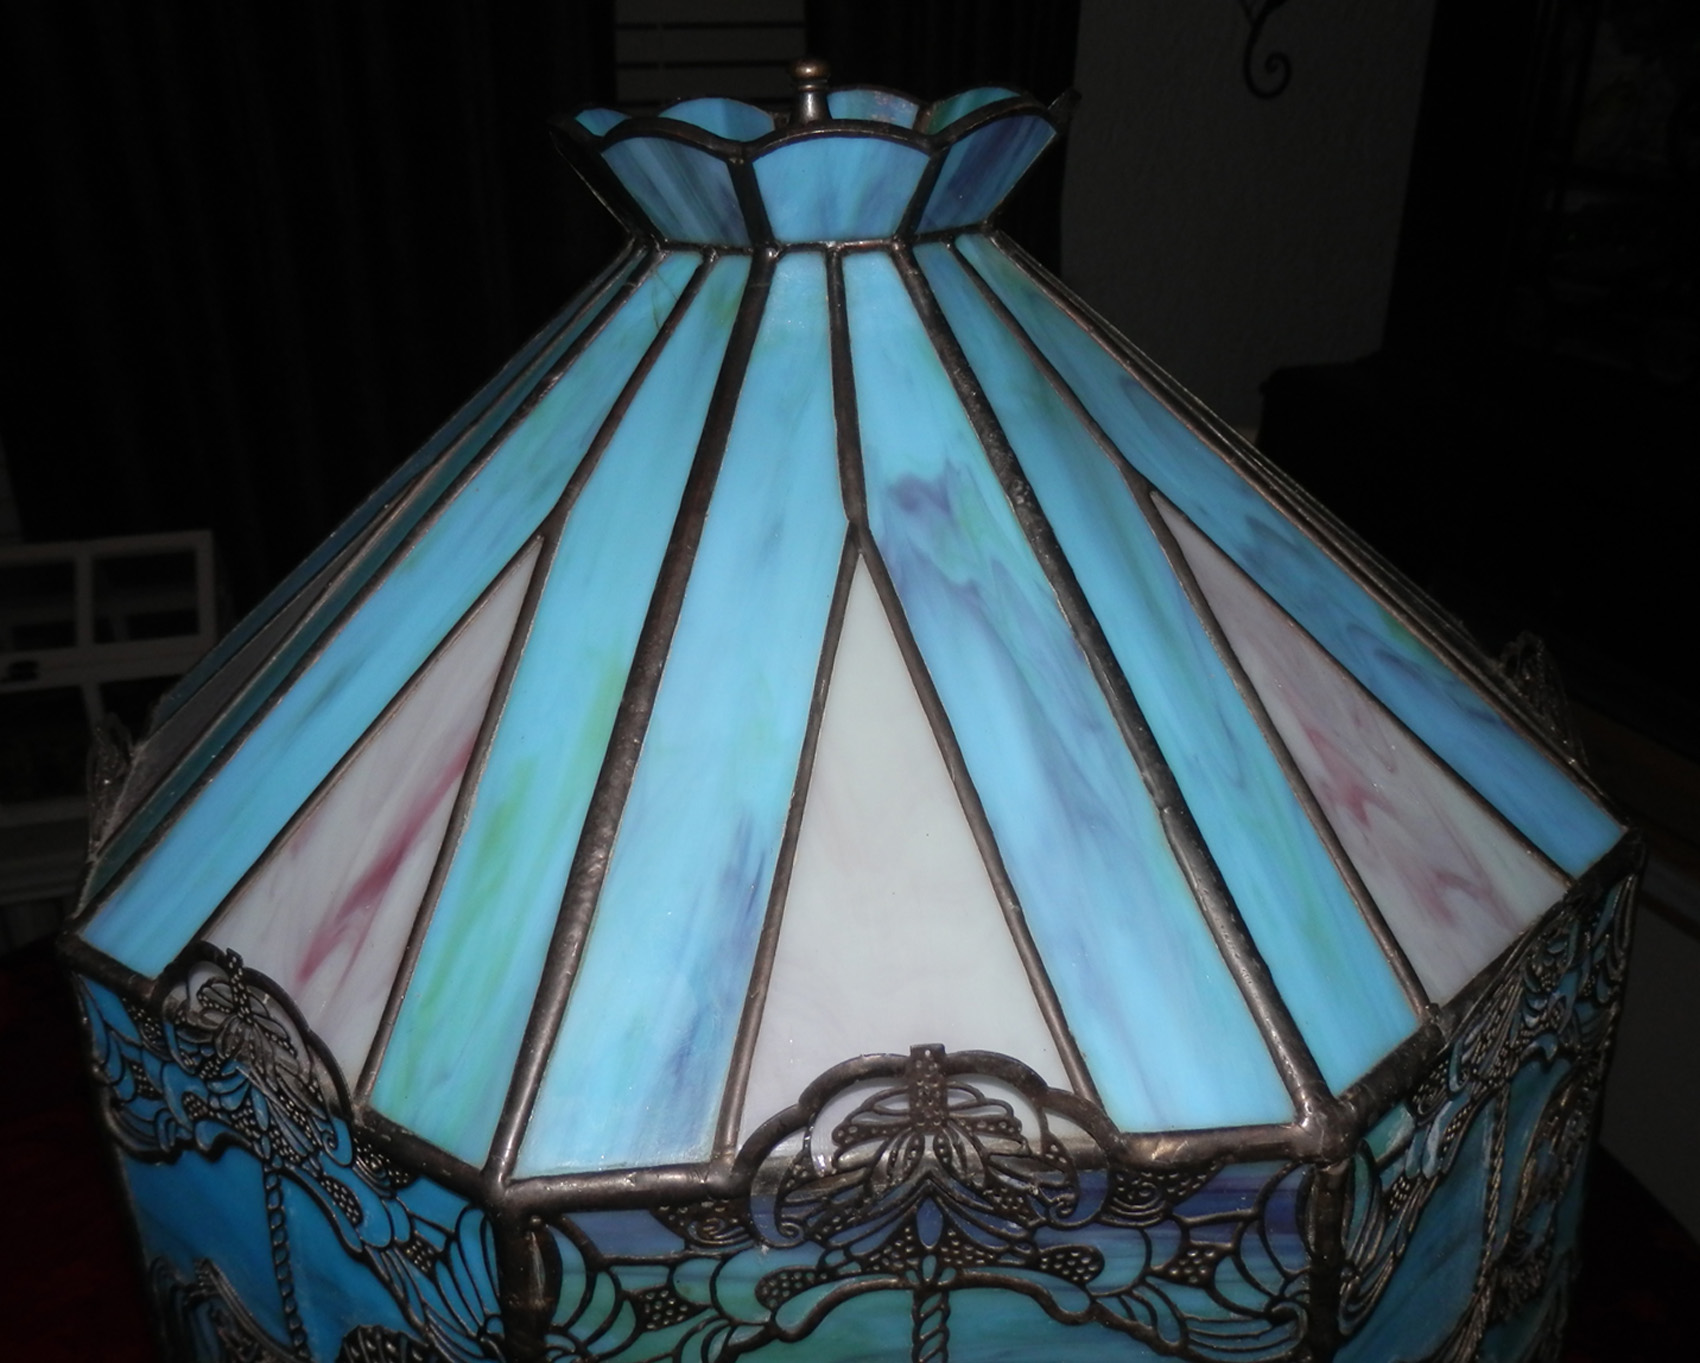 Handcrafted Slag Glass Carousel Lamp Sold Antiquecarousels Com